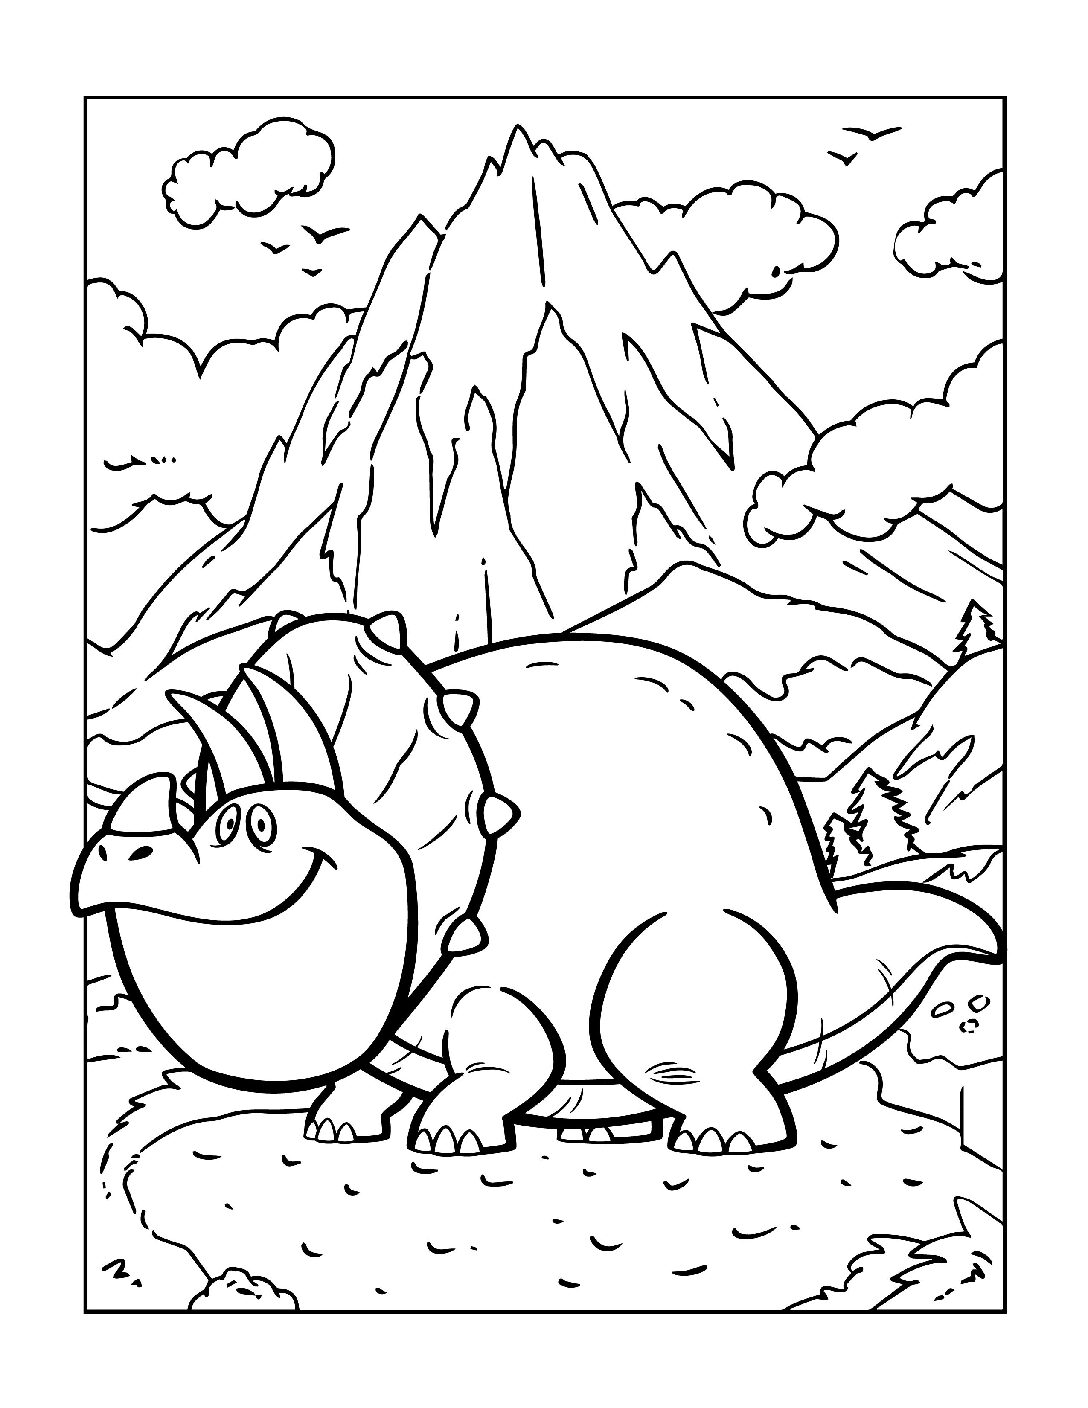 Coloring-Pages-Dinosaur-2-pdf Free Printable Dinasour Colouring Pages